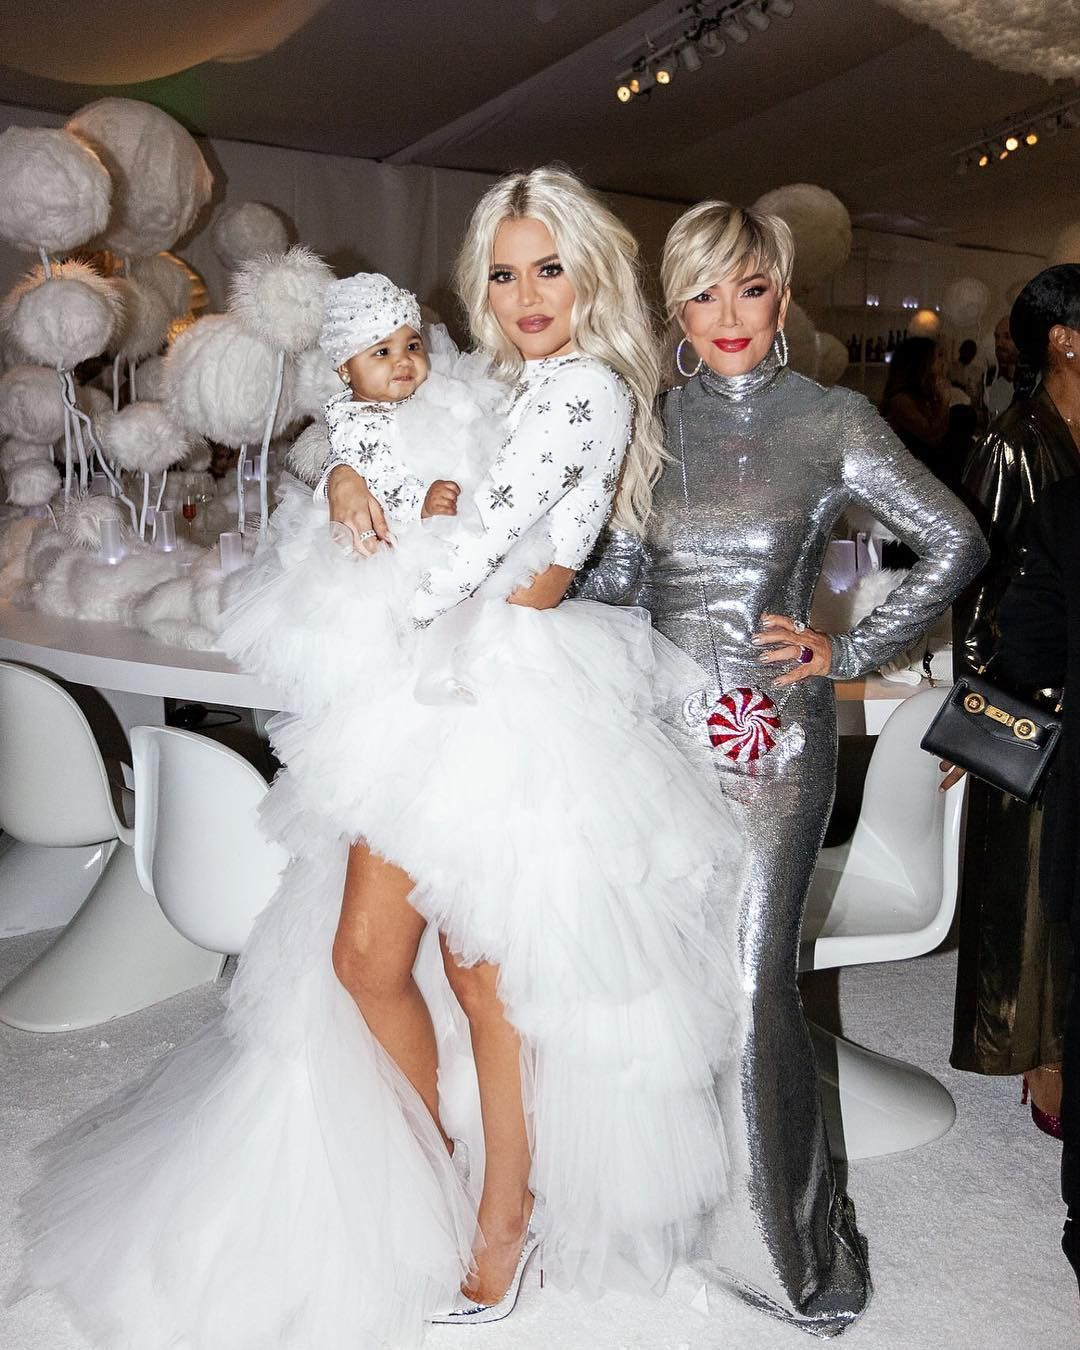 Kris Jenner Christmas 2019 True, Khloe and Kris | SLAY My Life✨ in 2019 | Khloe kardashian